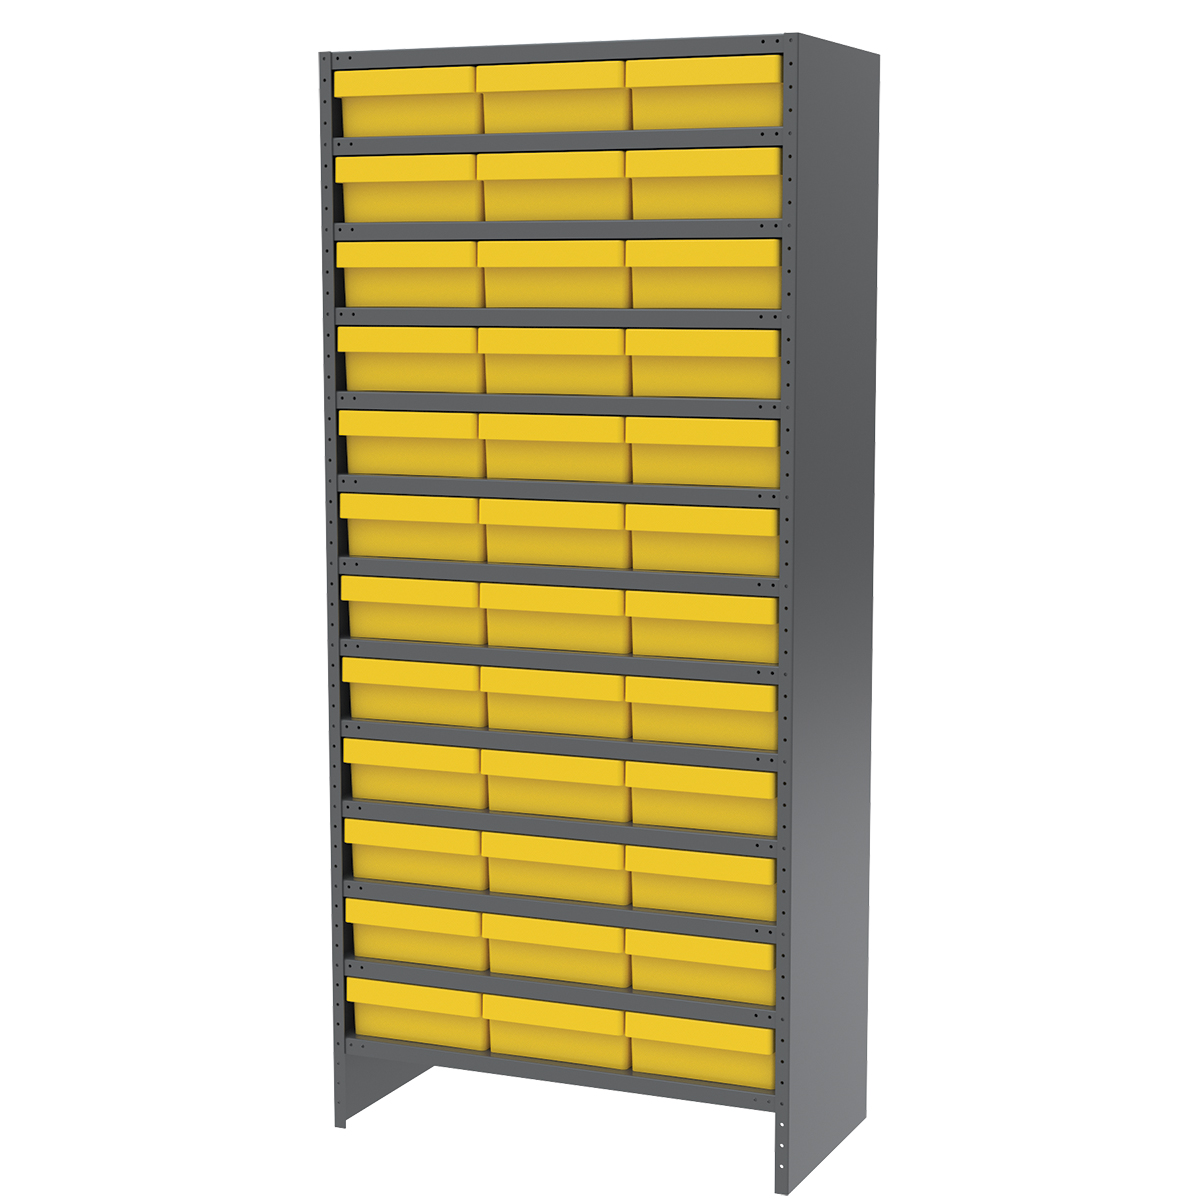 Enclosed Steel Shelving Kit, 18x36x79, 36 AkroDrawers, Gray/Yellow.  This item sold in carton quantities of 1.